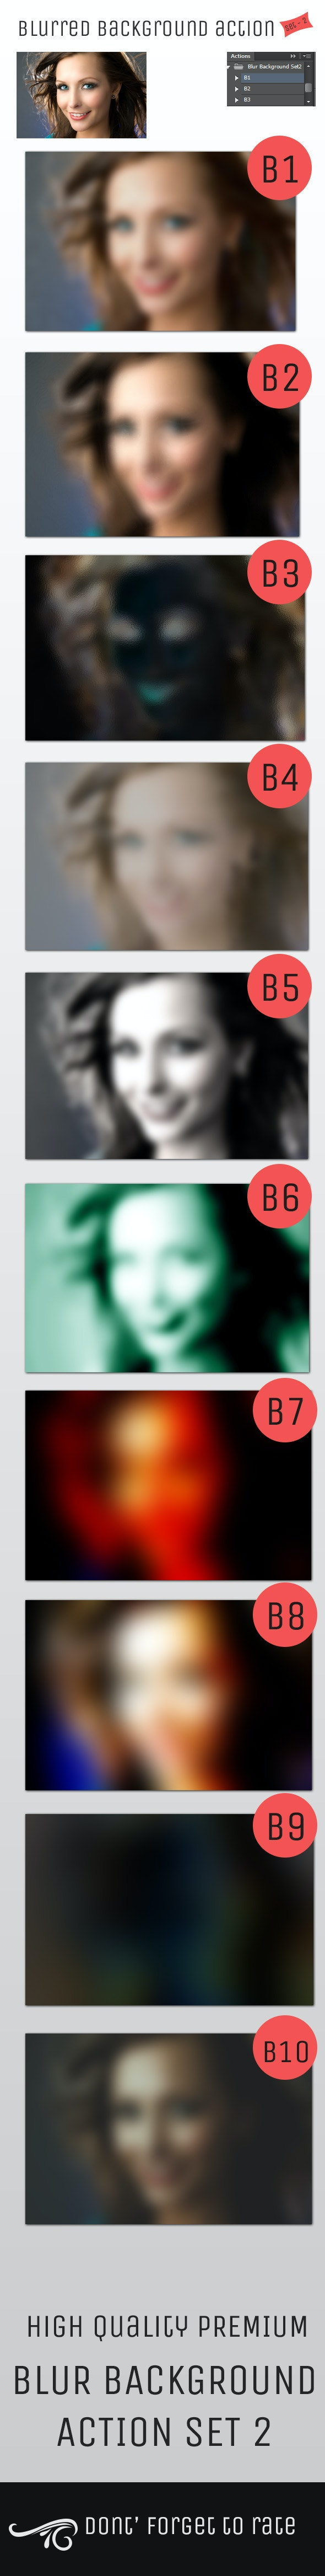 Blur Background Action Set V2 - Photo Effects Actions